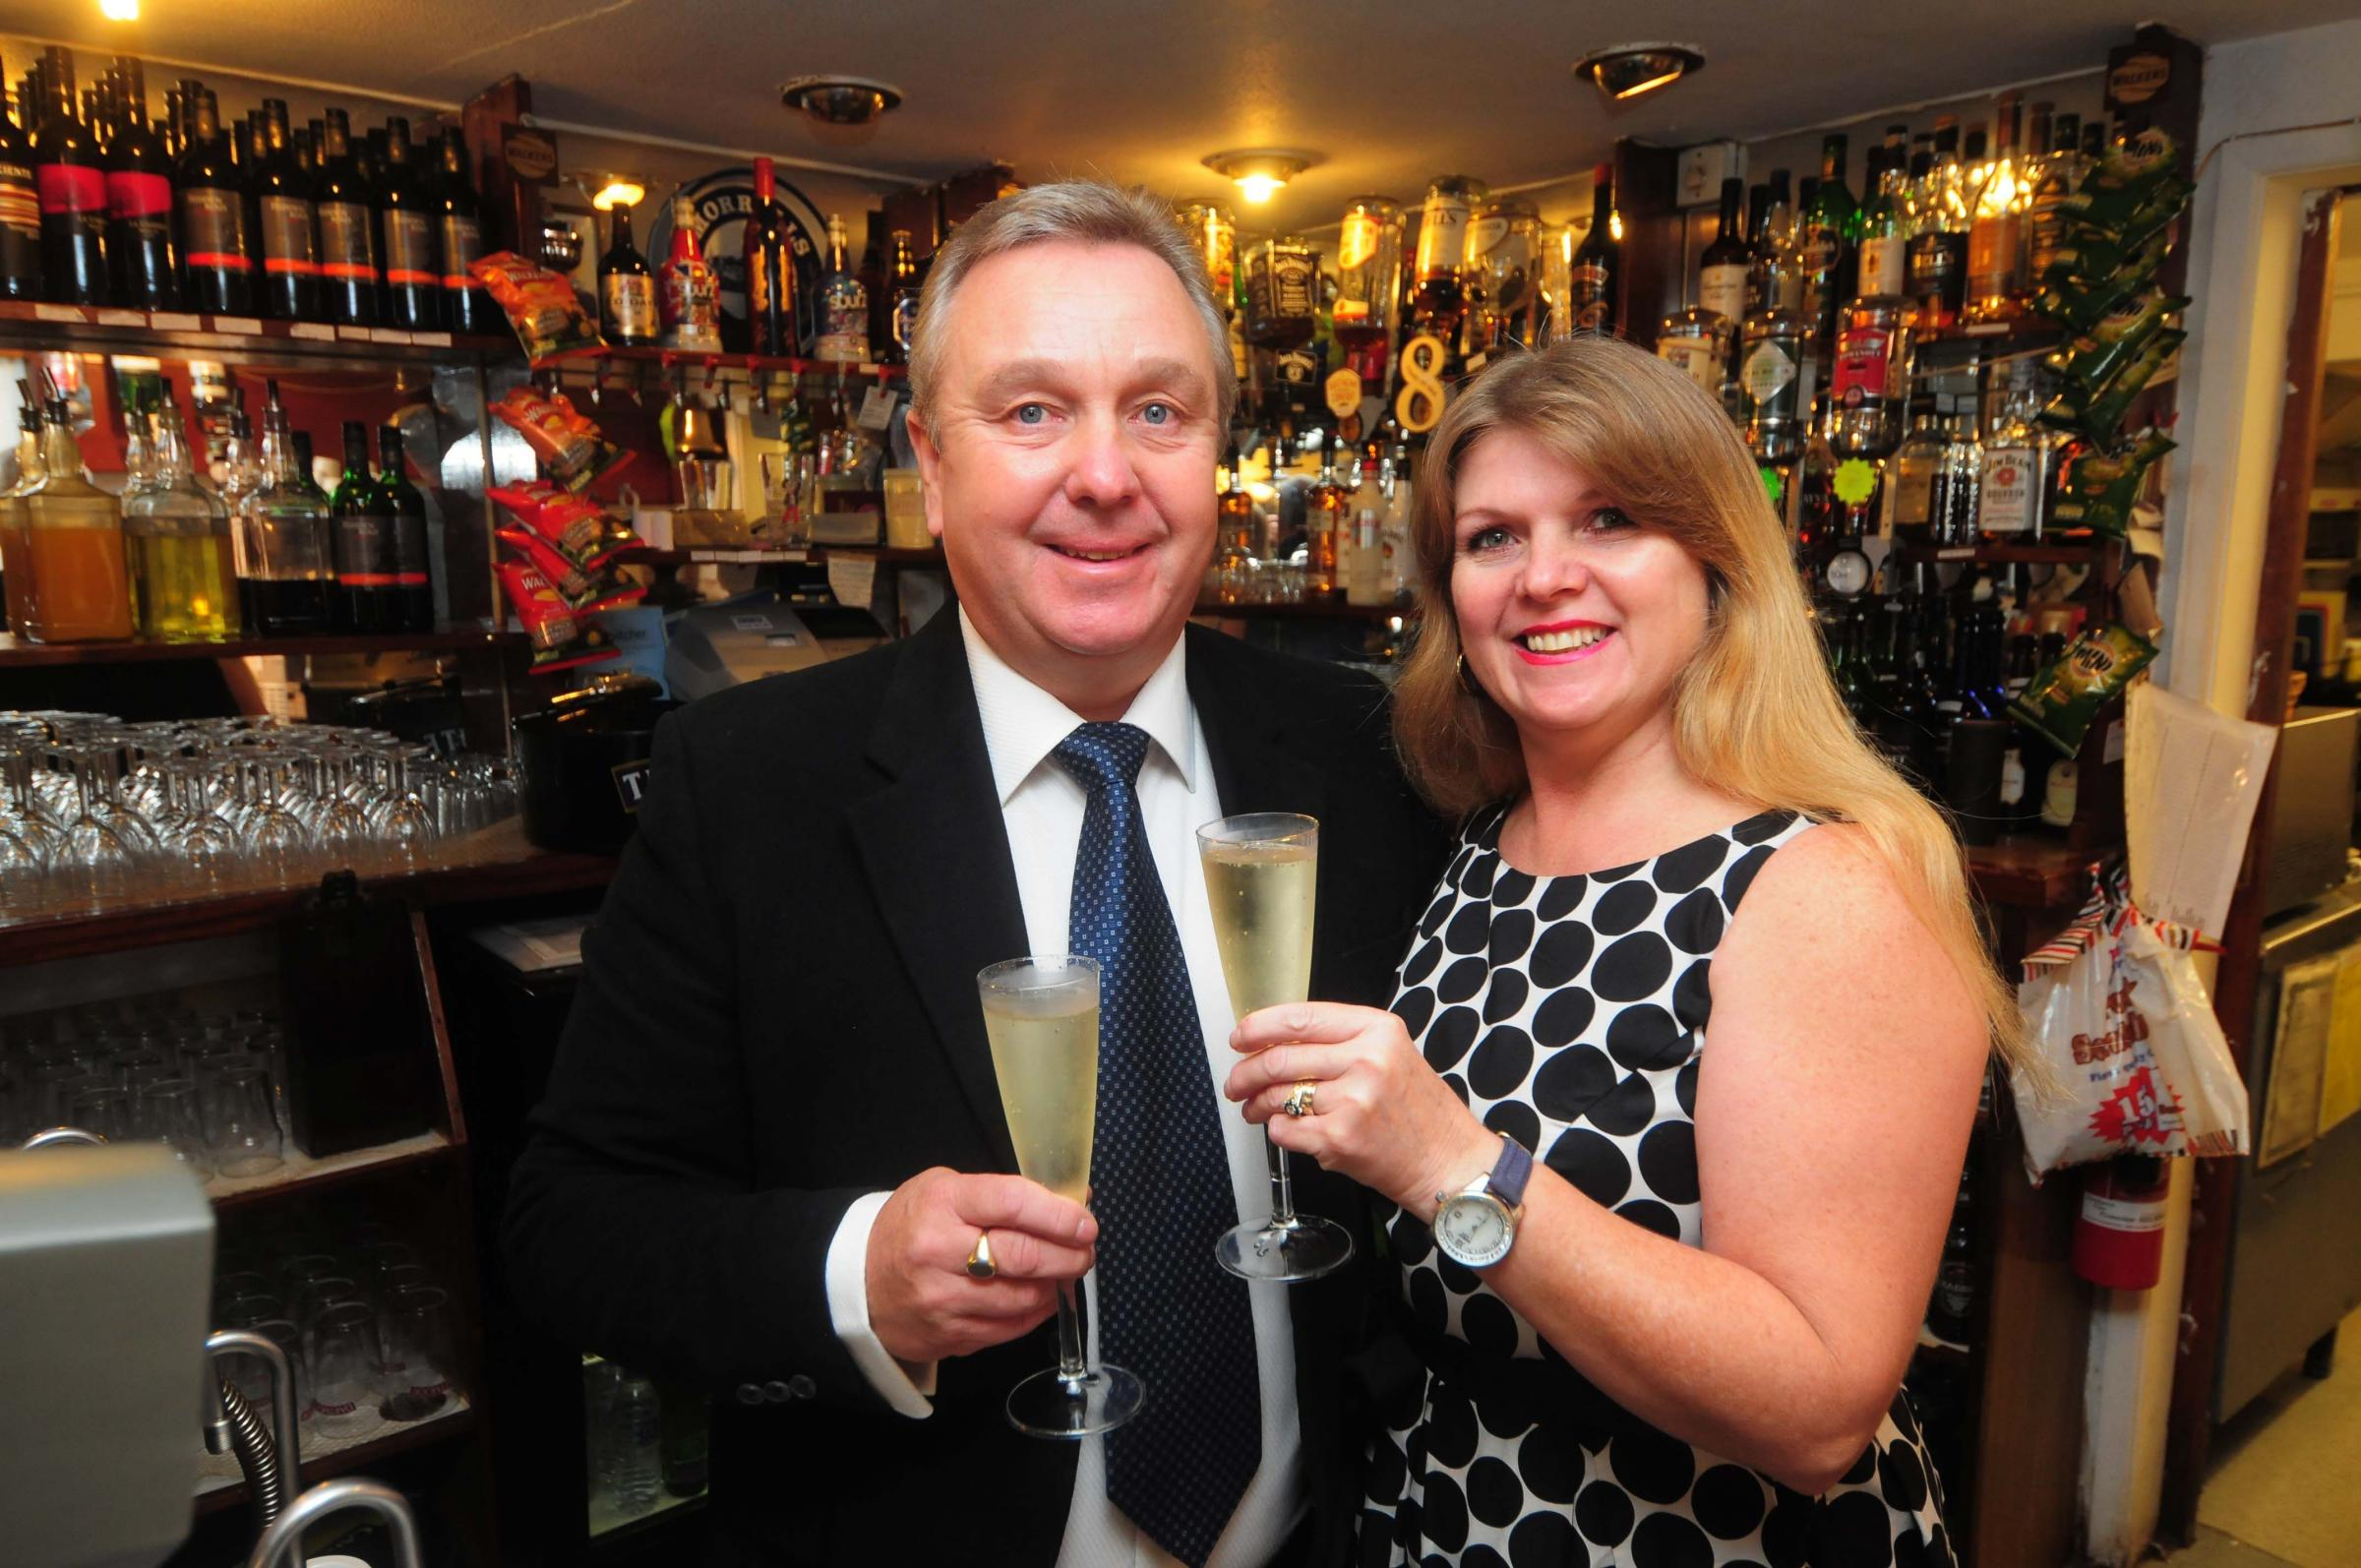 Dating a pub landlord opportunities